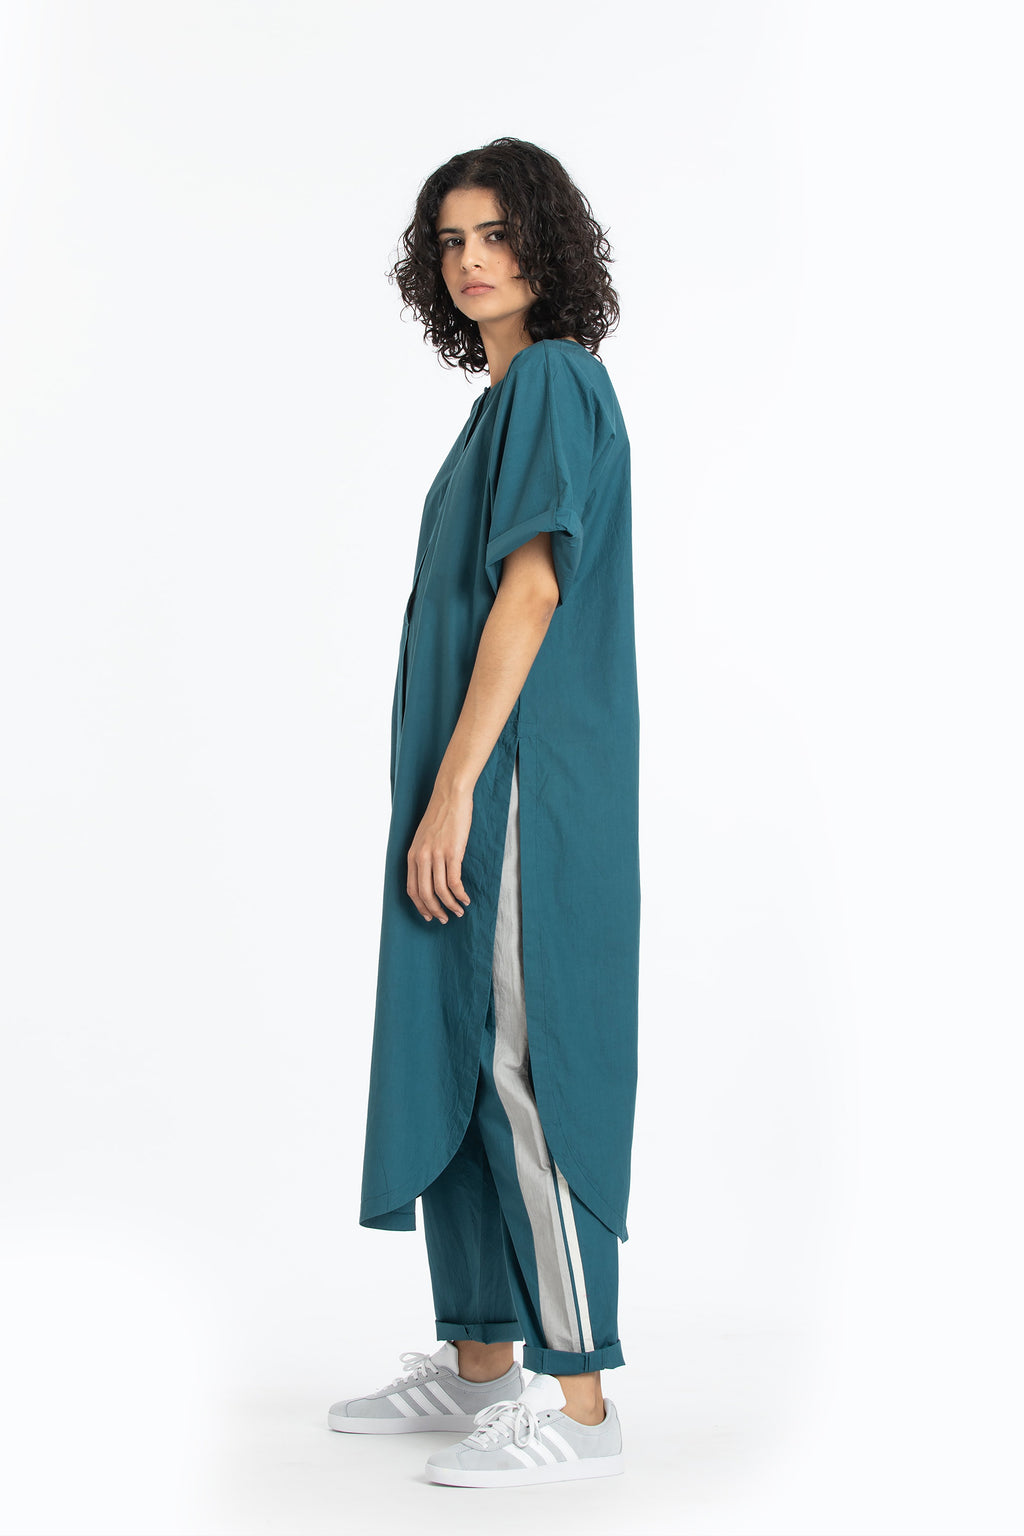 U shaped hem tunic-Teal